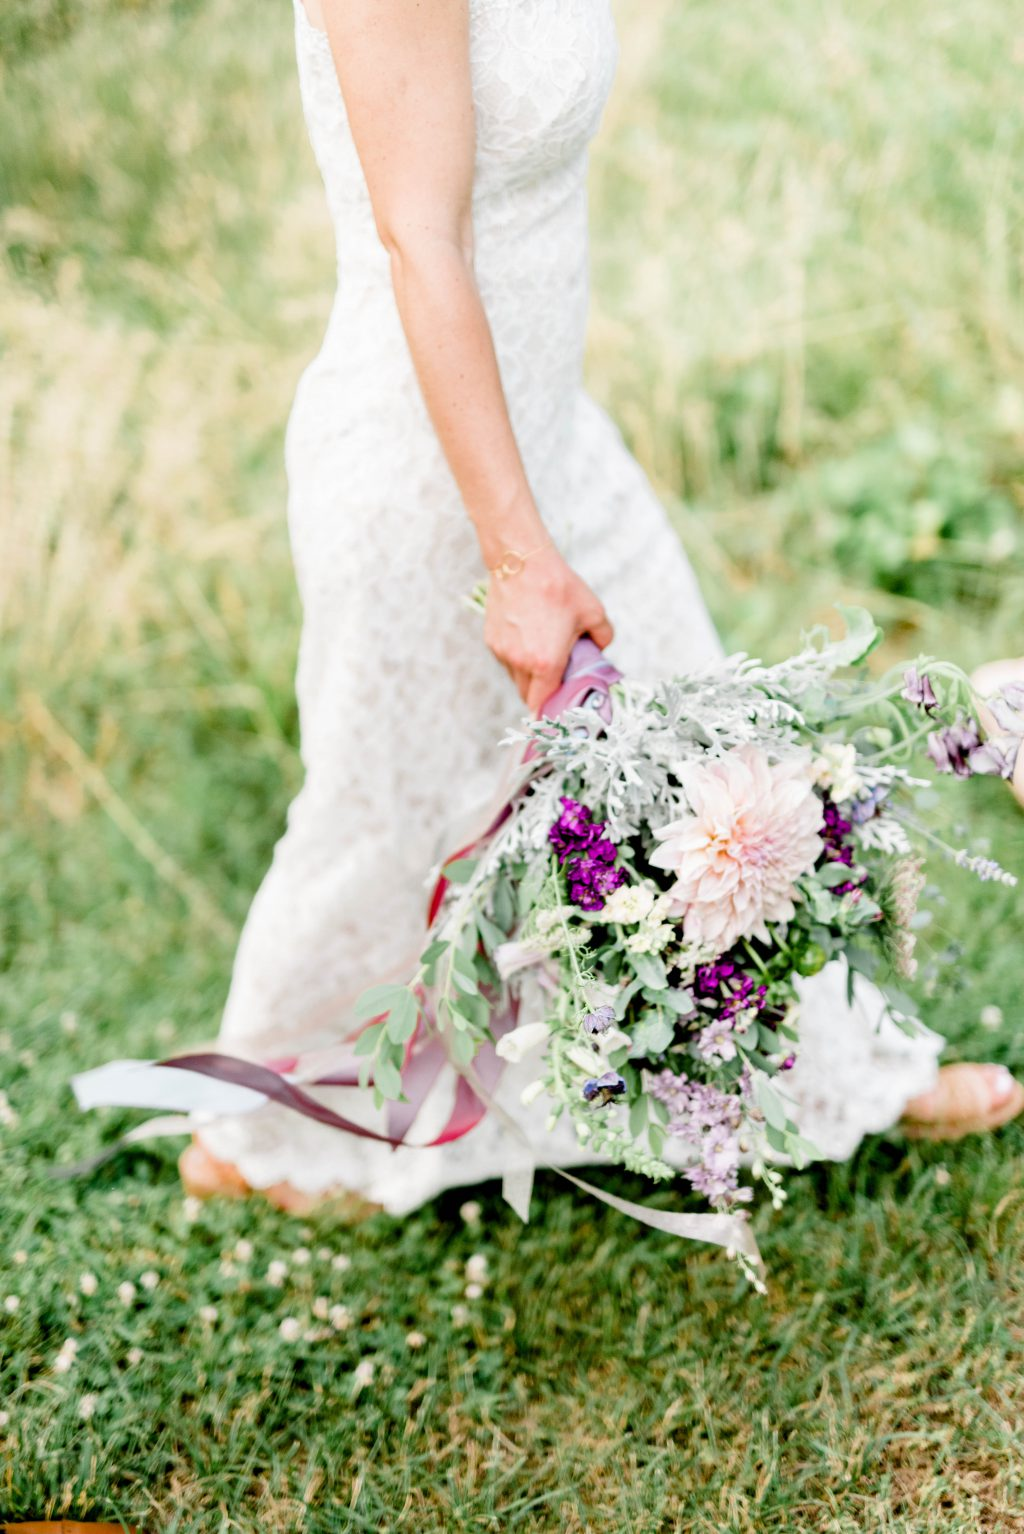 awbury-arboretum-wedding-DIY-boho-summer-haley-richter-photography-196